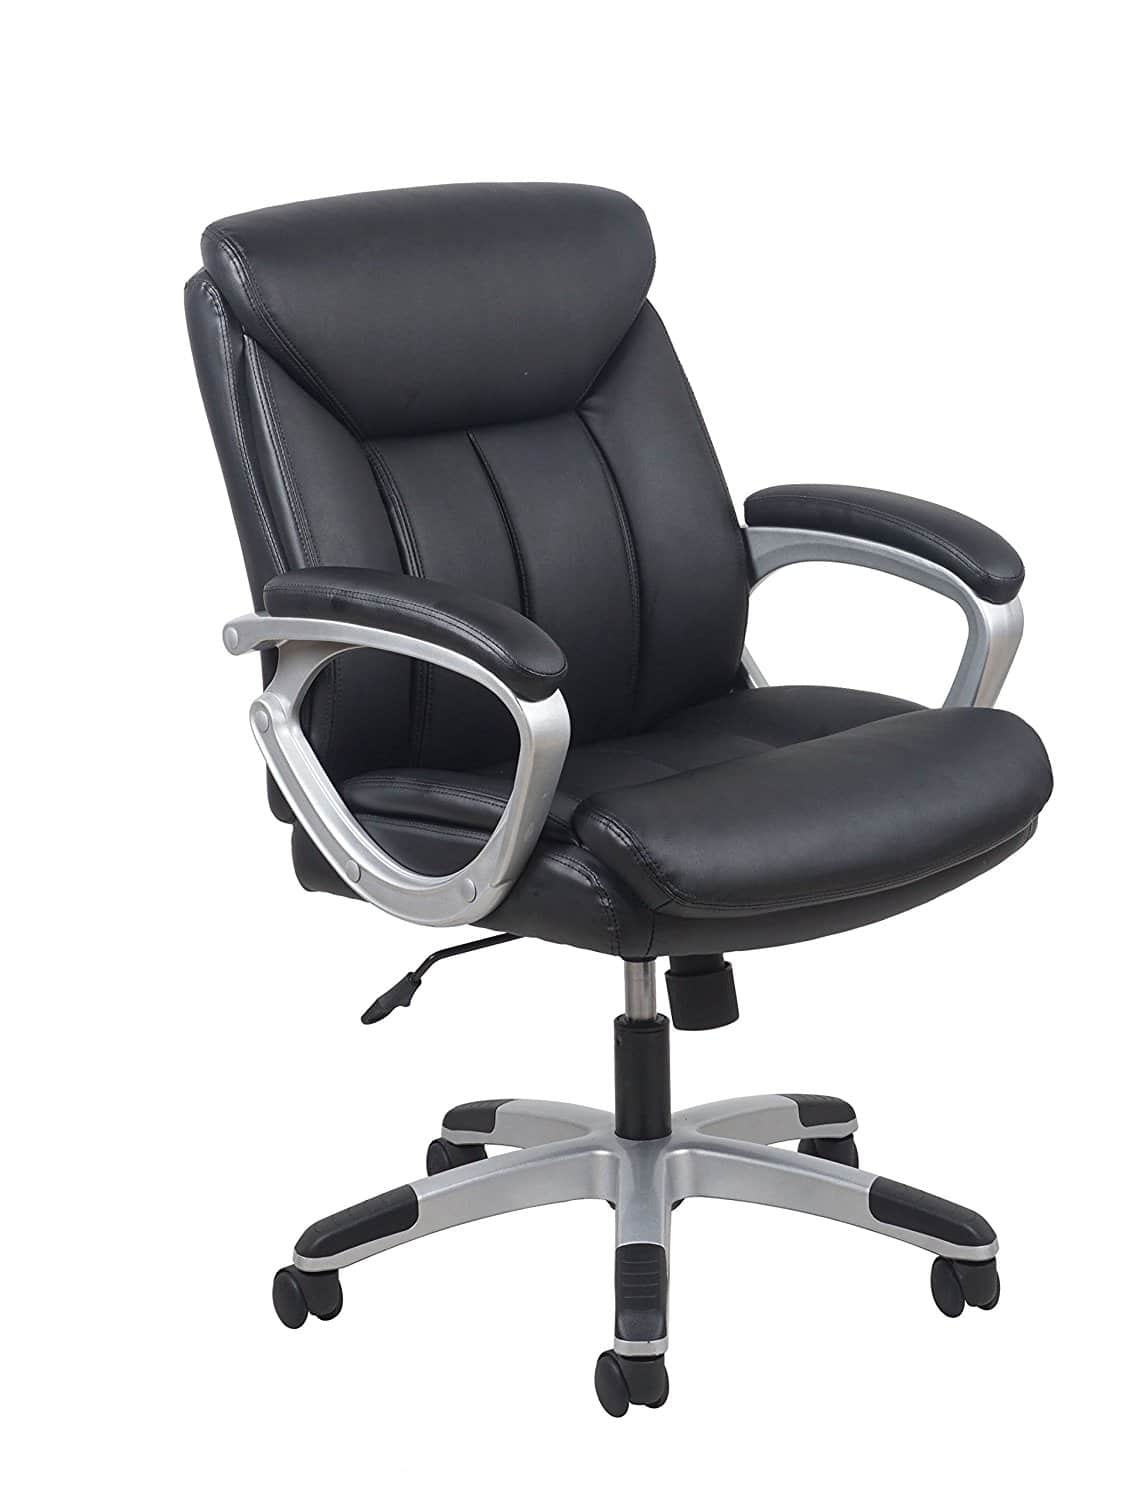 best the chairs lazy boy pc gaming chair ergonomic office review dec 2018 a